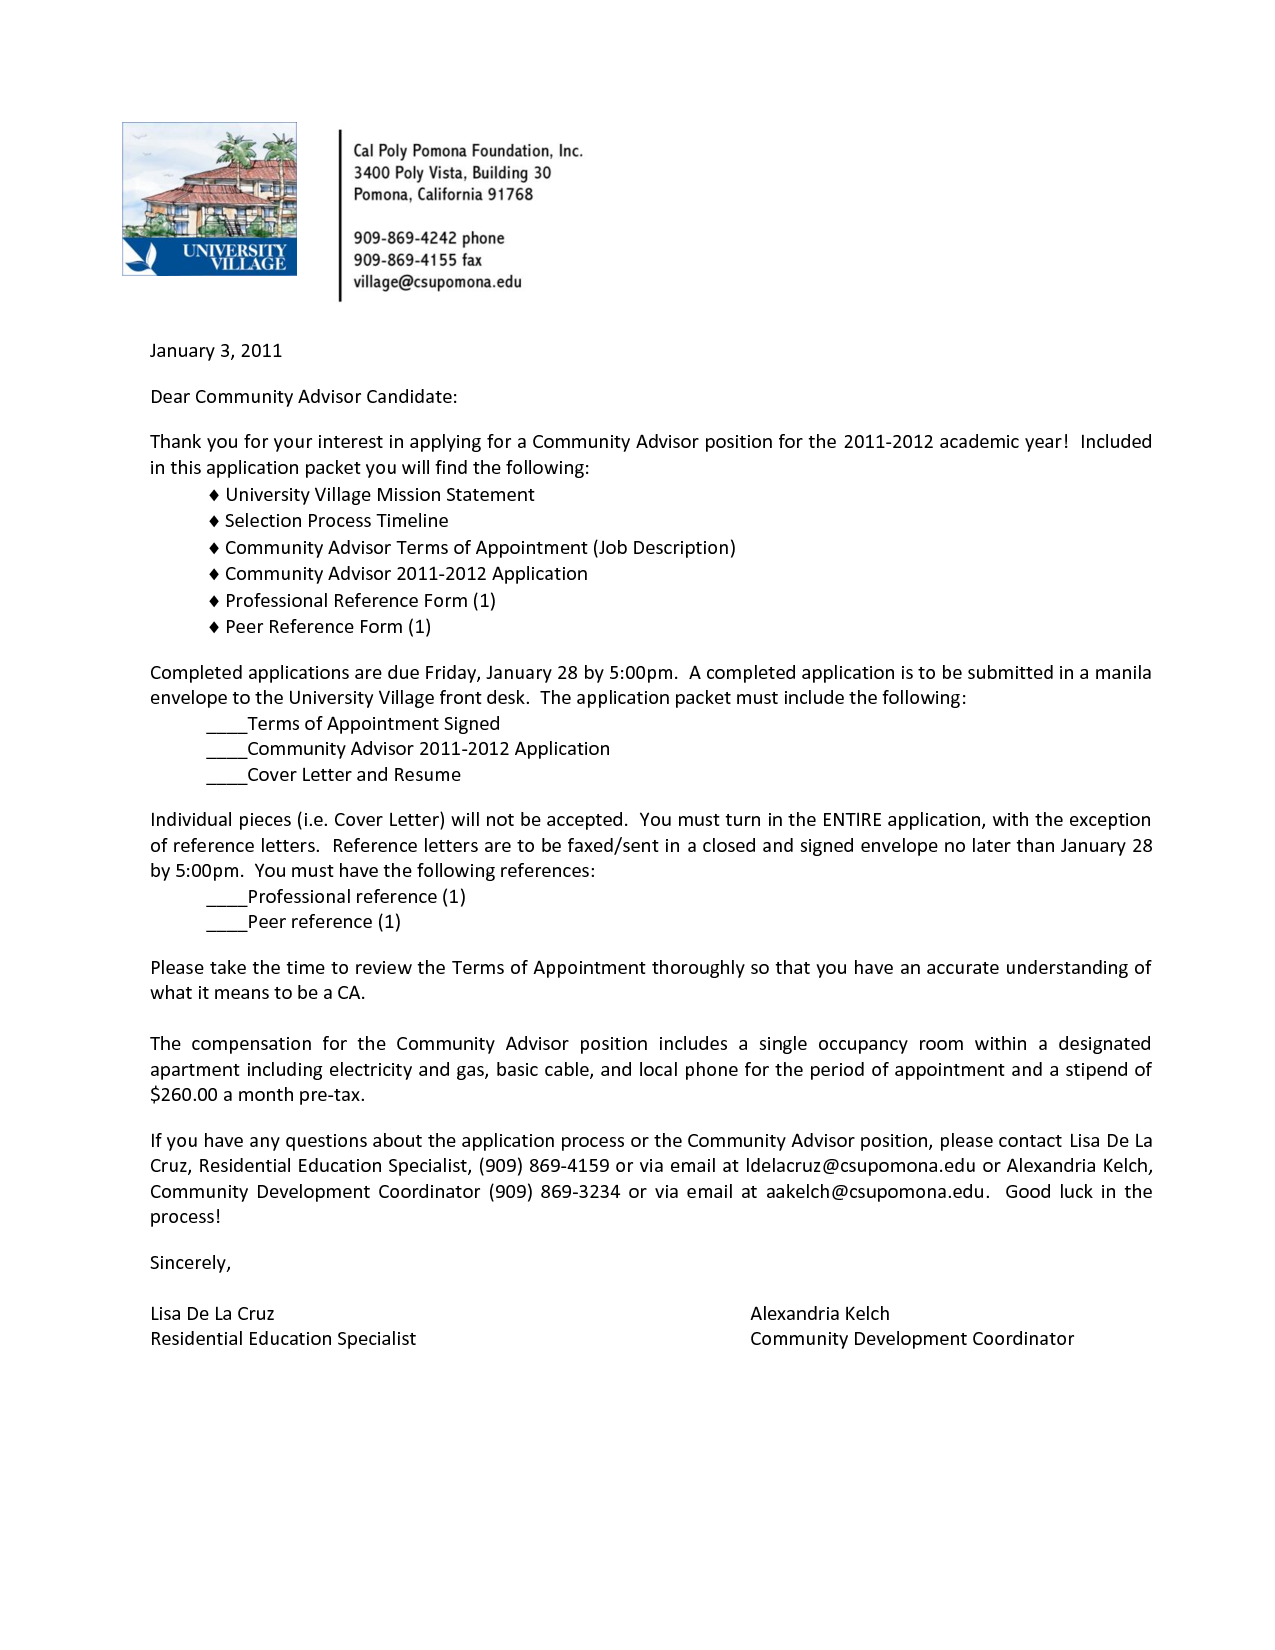 Cover Letter Examples For Paraeducator Http Www Resumecareer Info Cover Letter Examples For Paraeducator 3